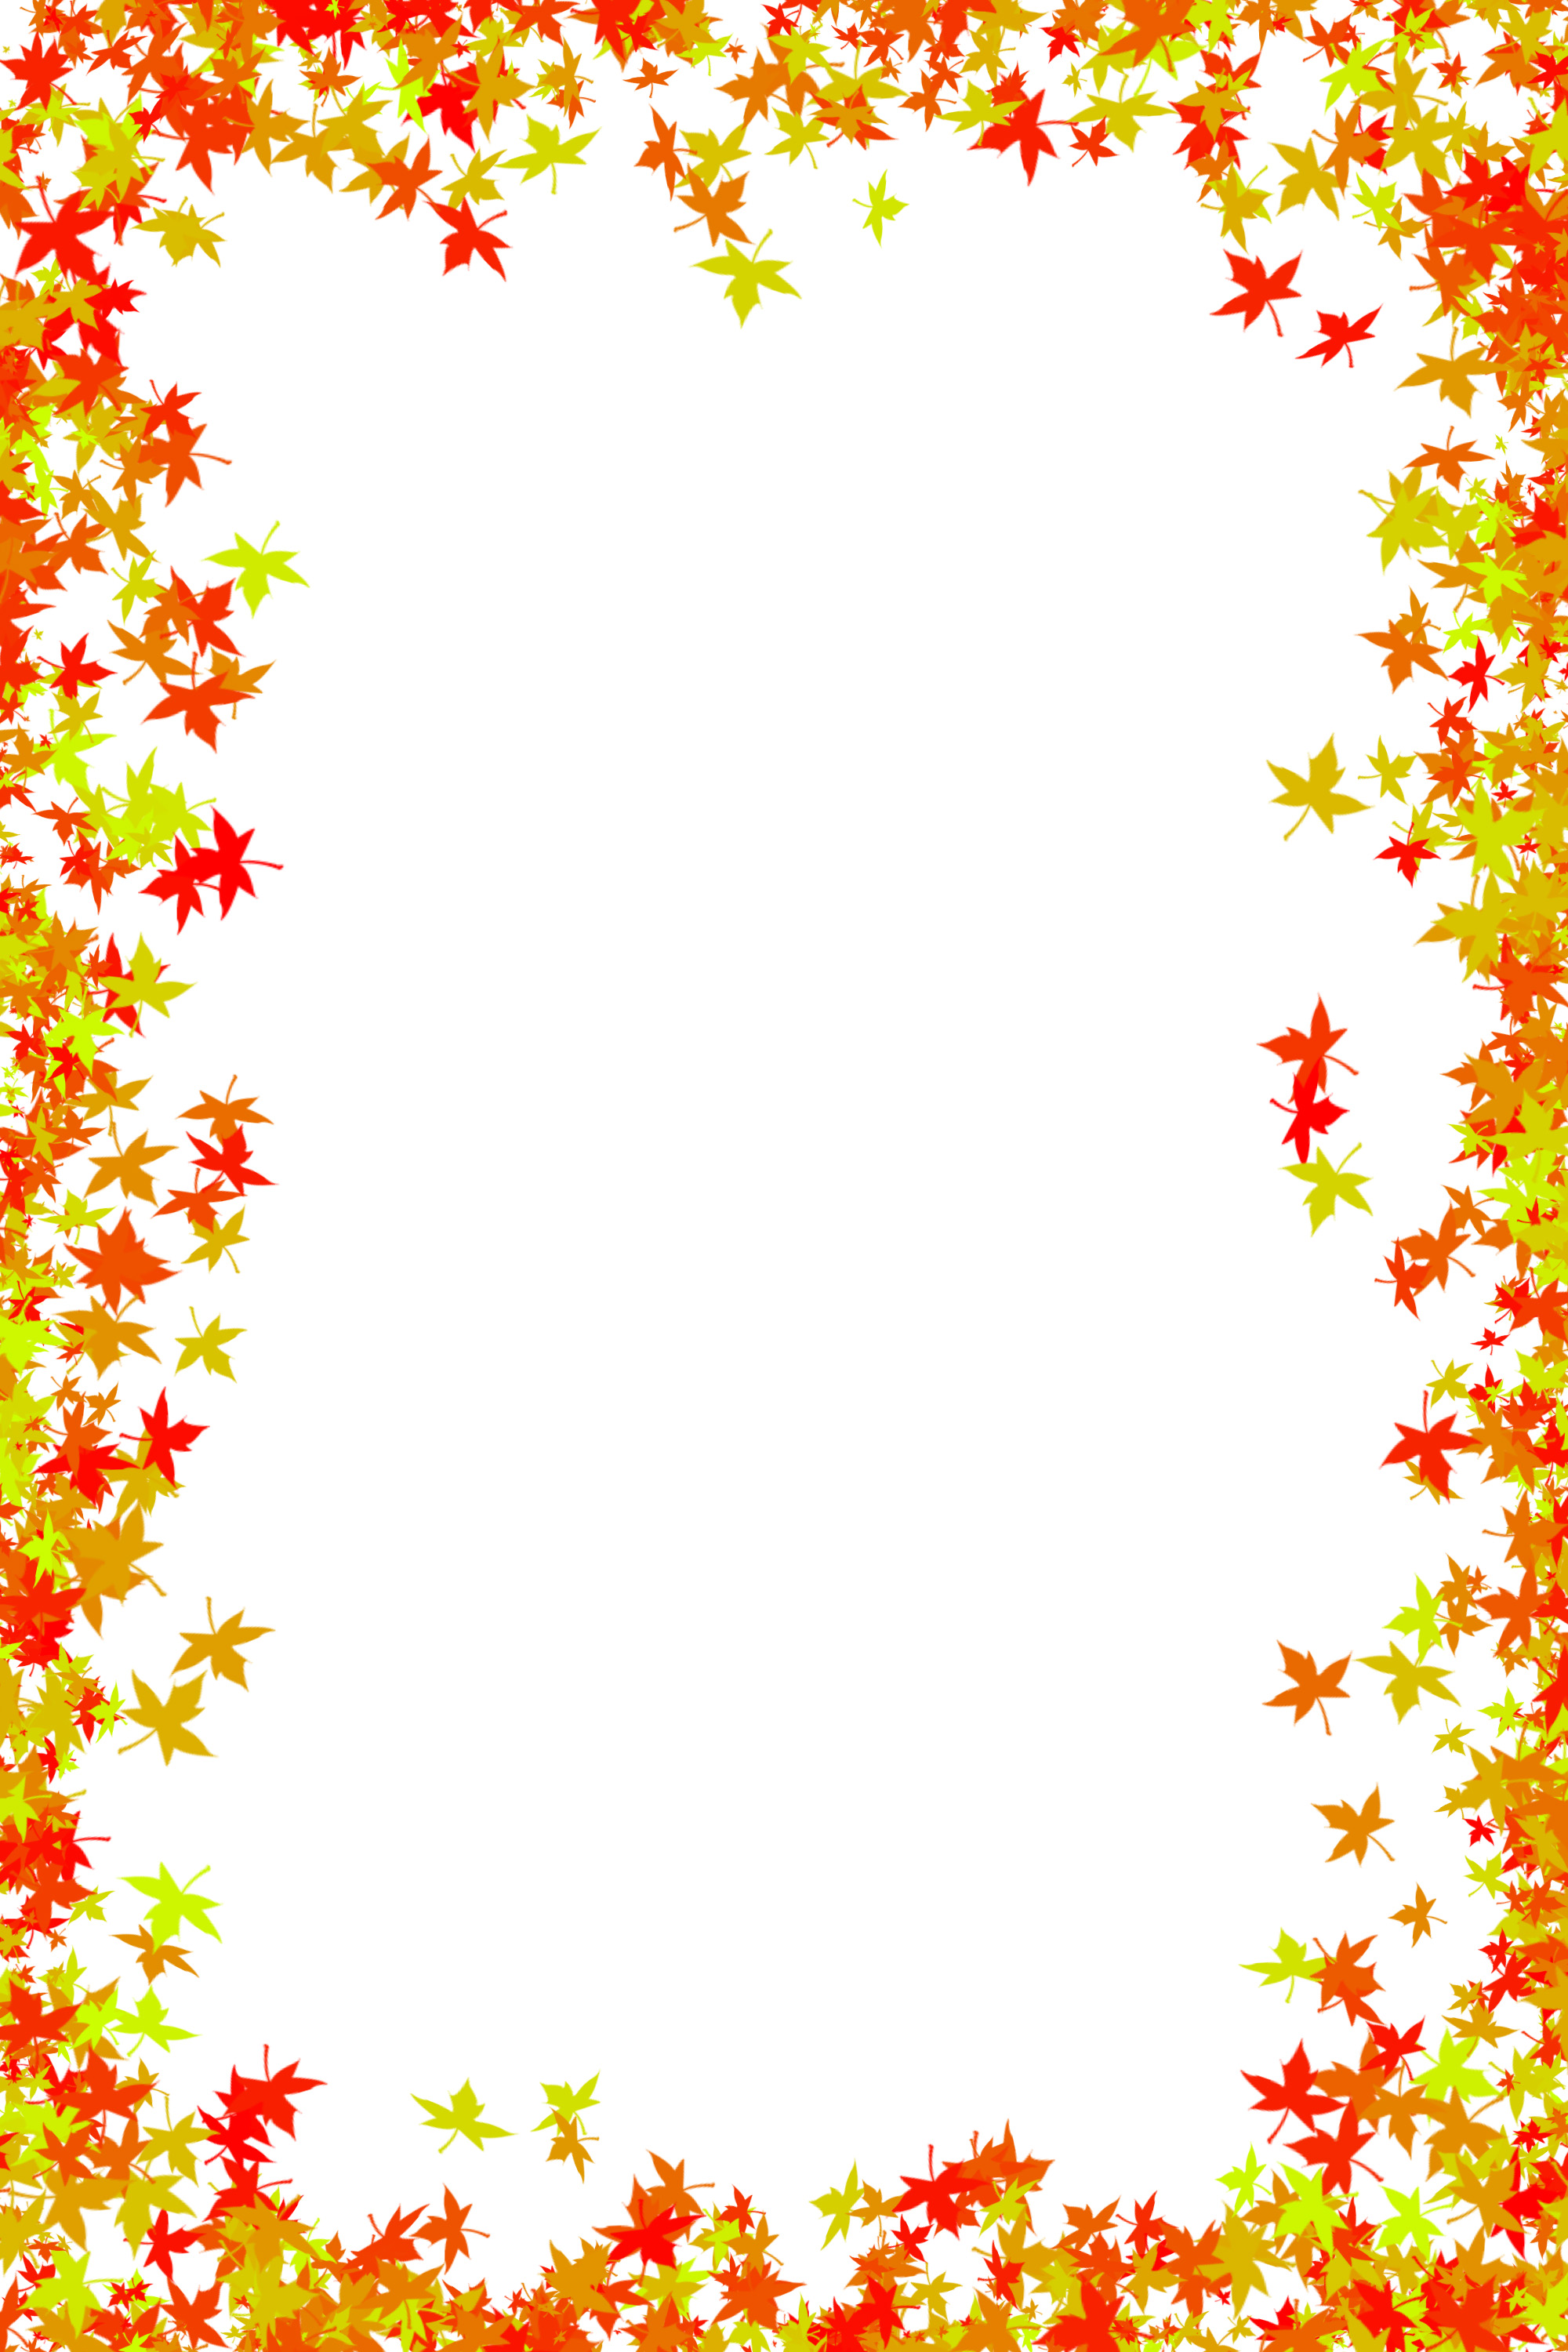 photo frame of maple leaves in red and orange colors